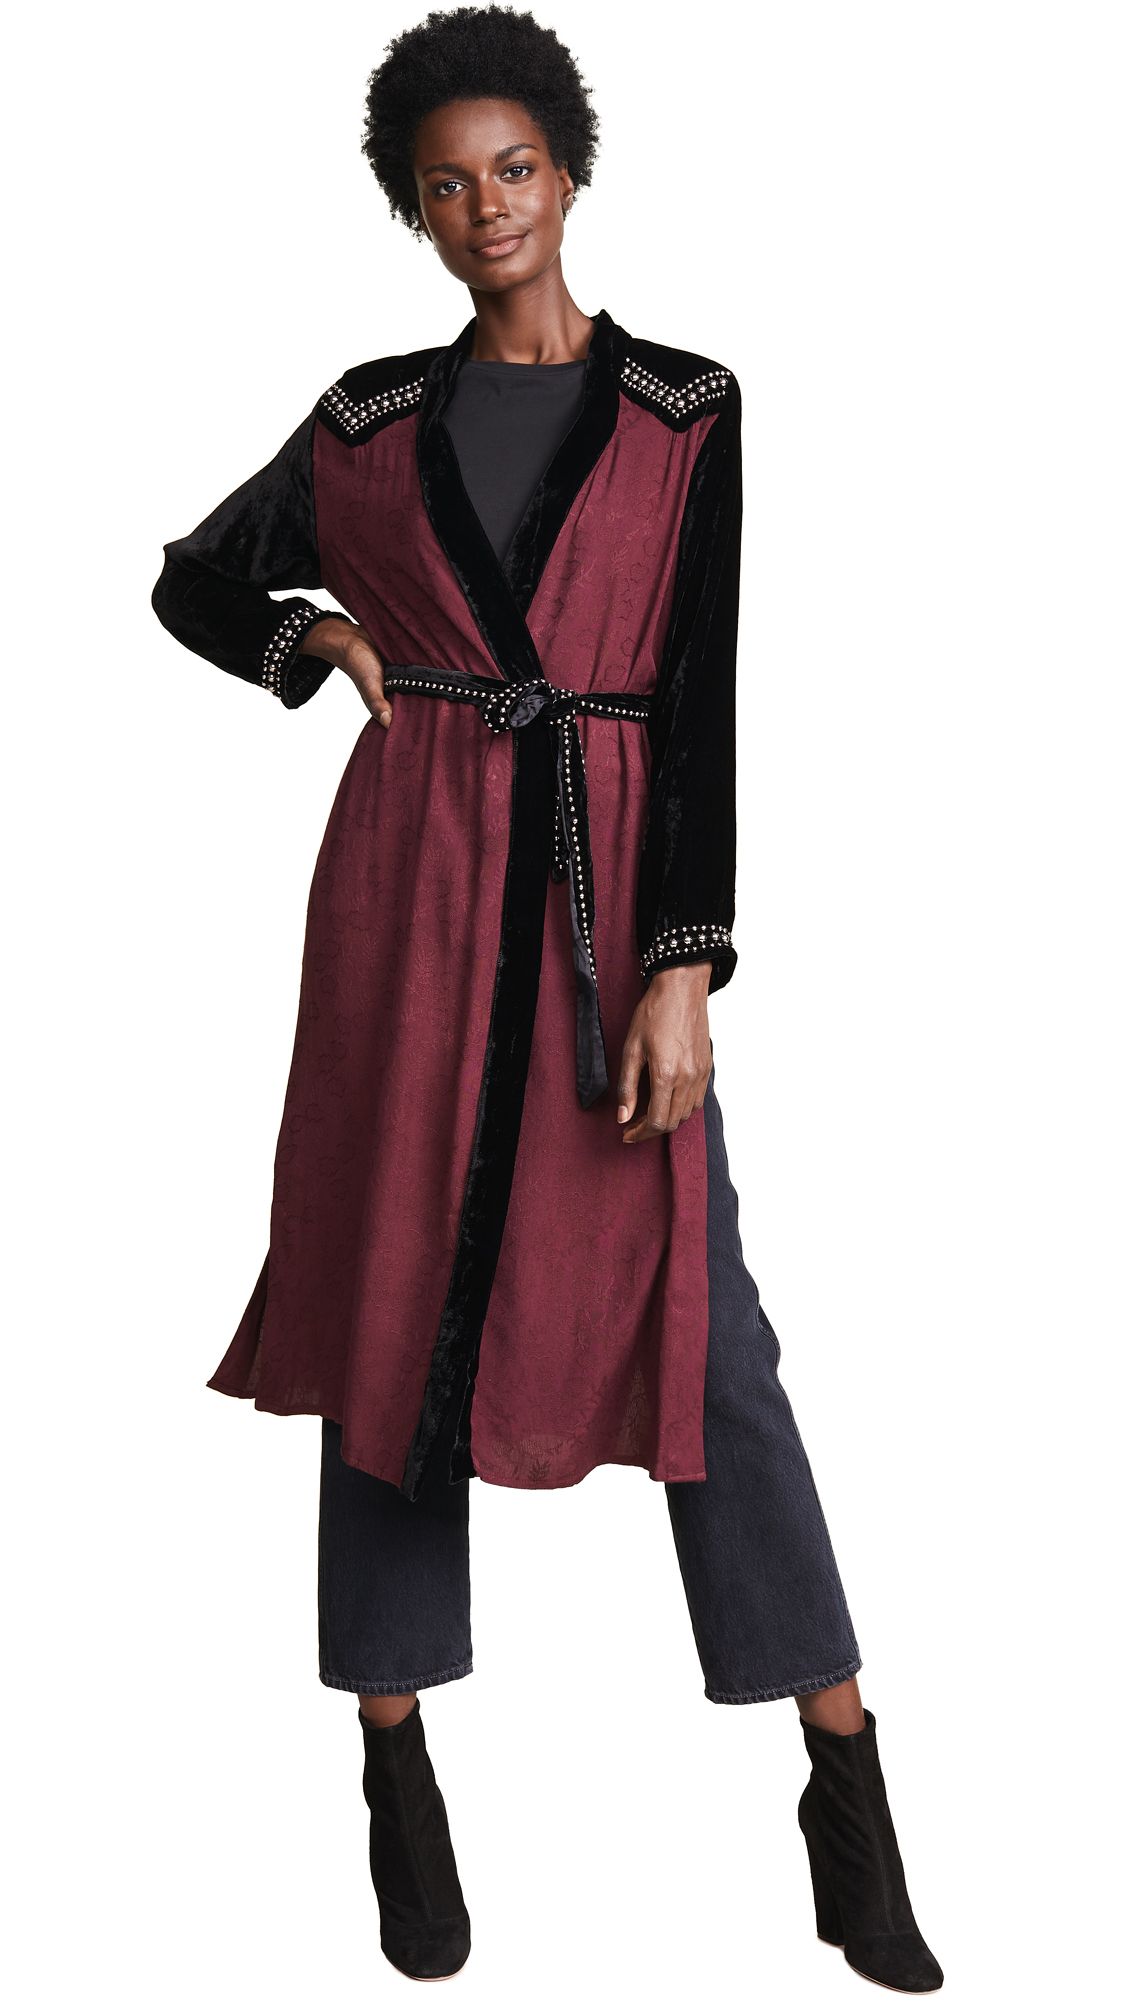 ONE by One By Emmy Lou Studded Kimono In Burgundy/Black